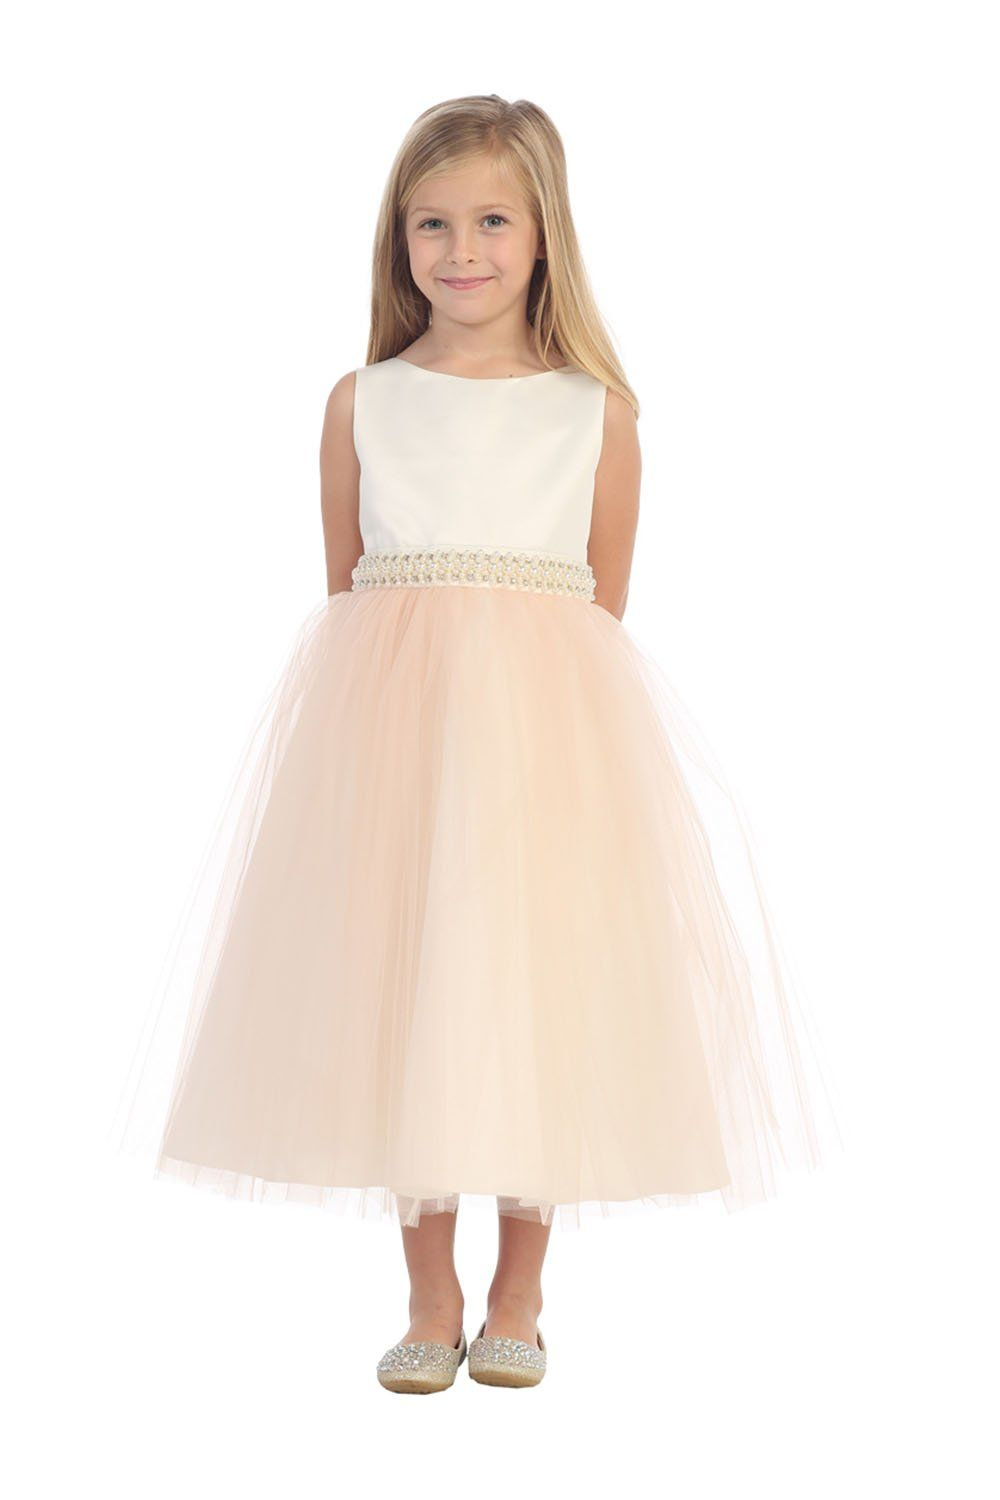 c53c75a79ac8 Champagne Sleeveless Satin Top Flower Girl Dress with Tulle Overlay Skirt